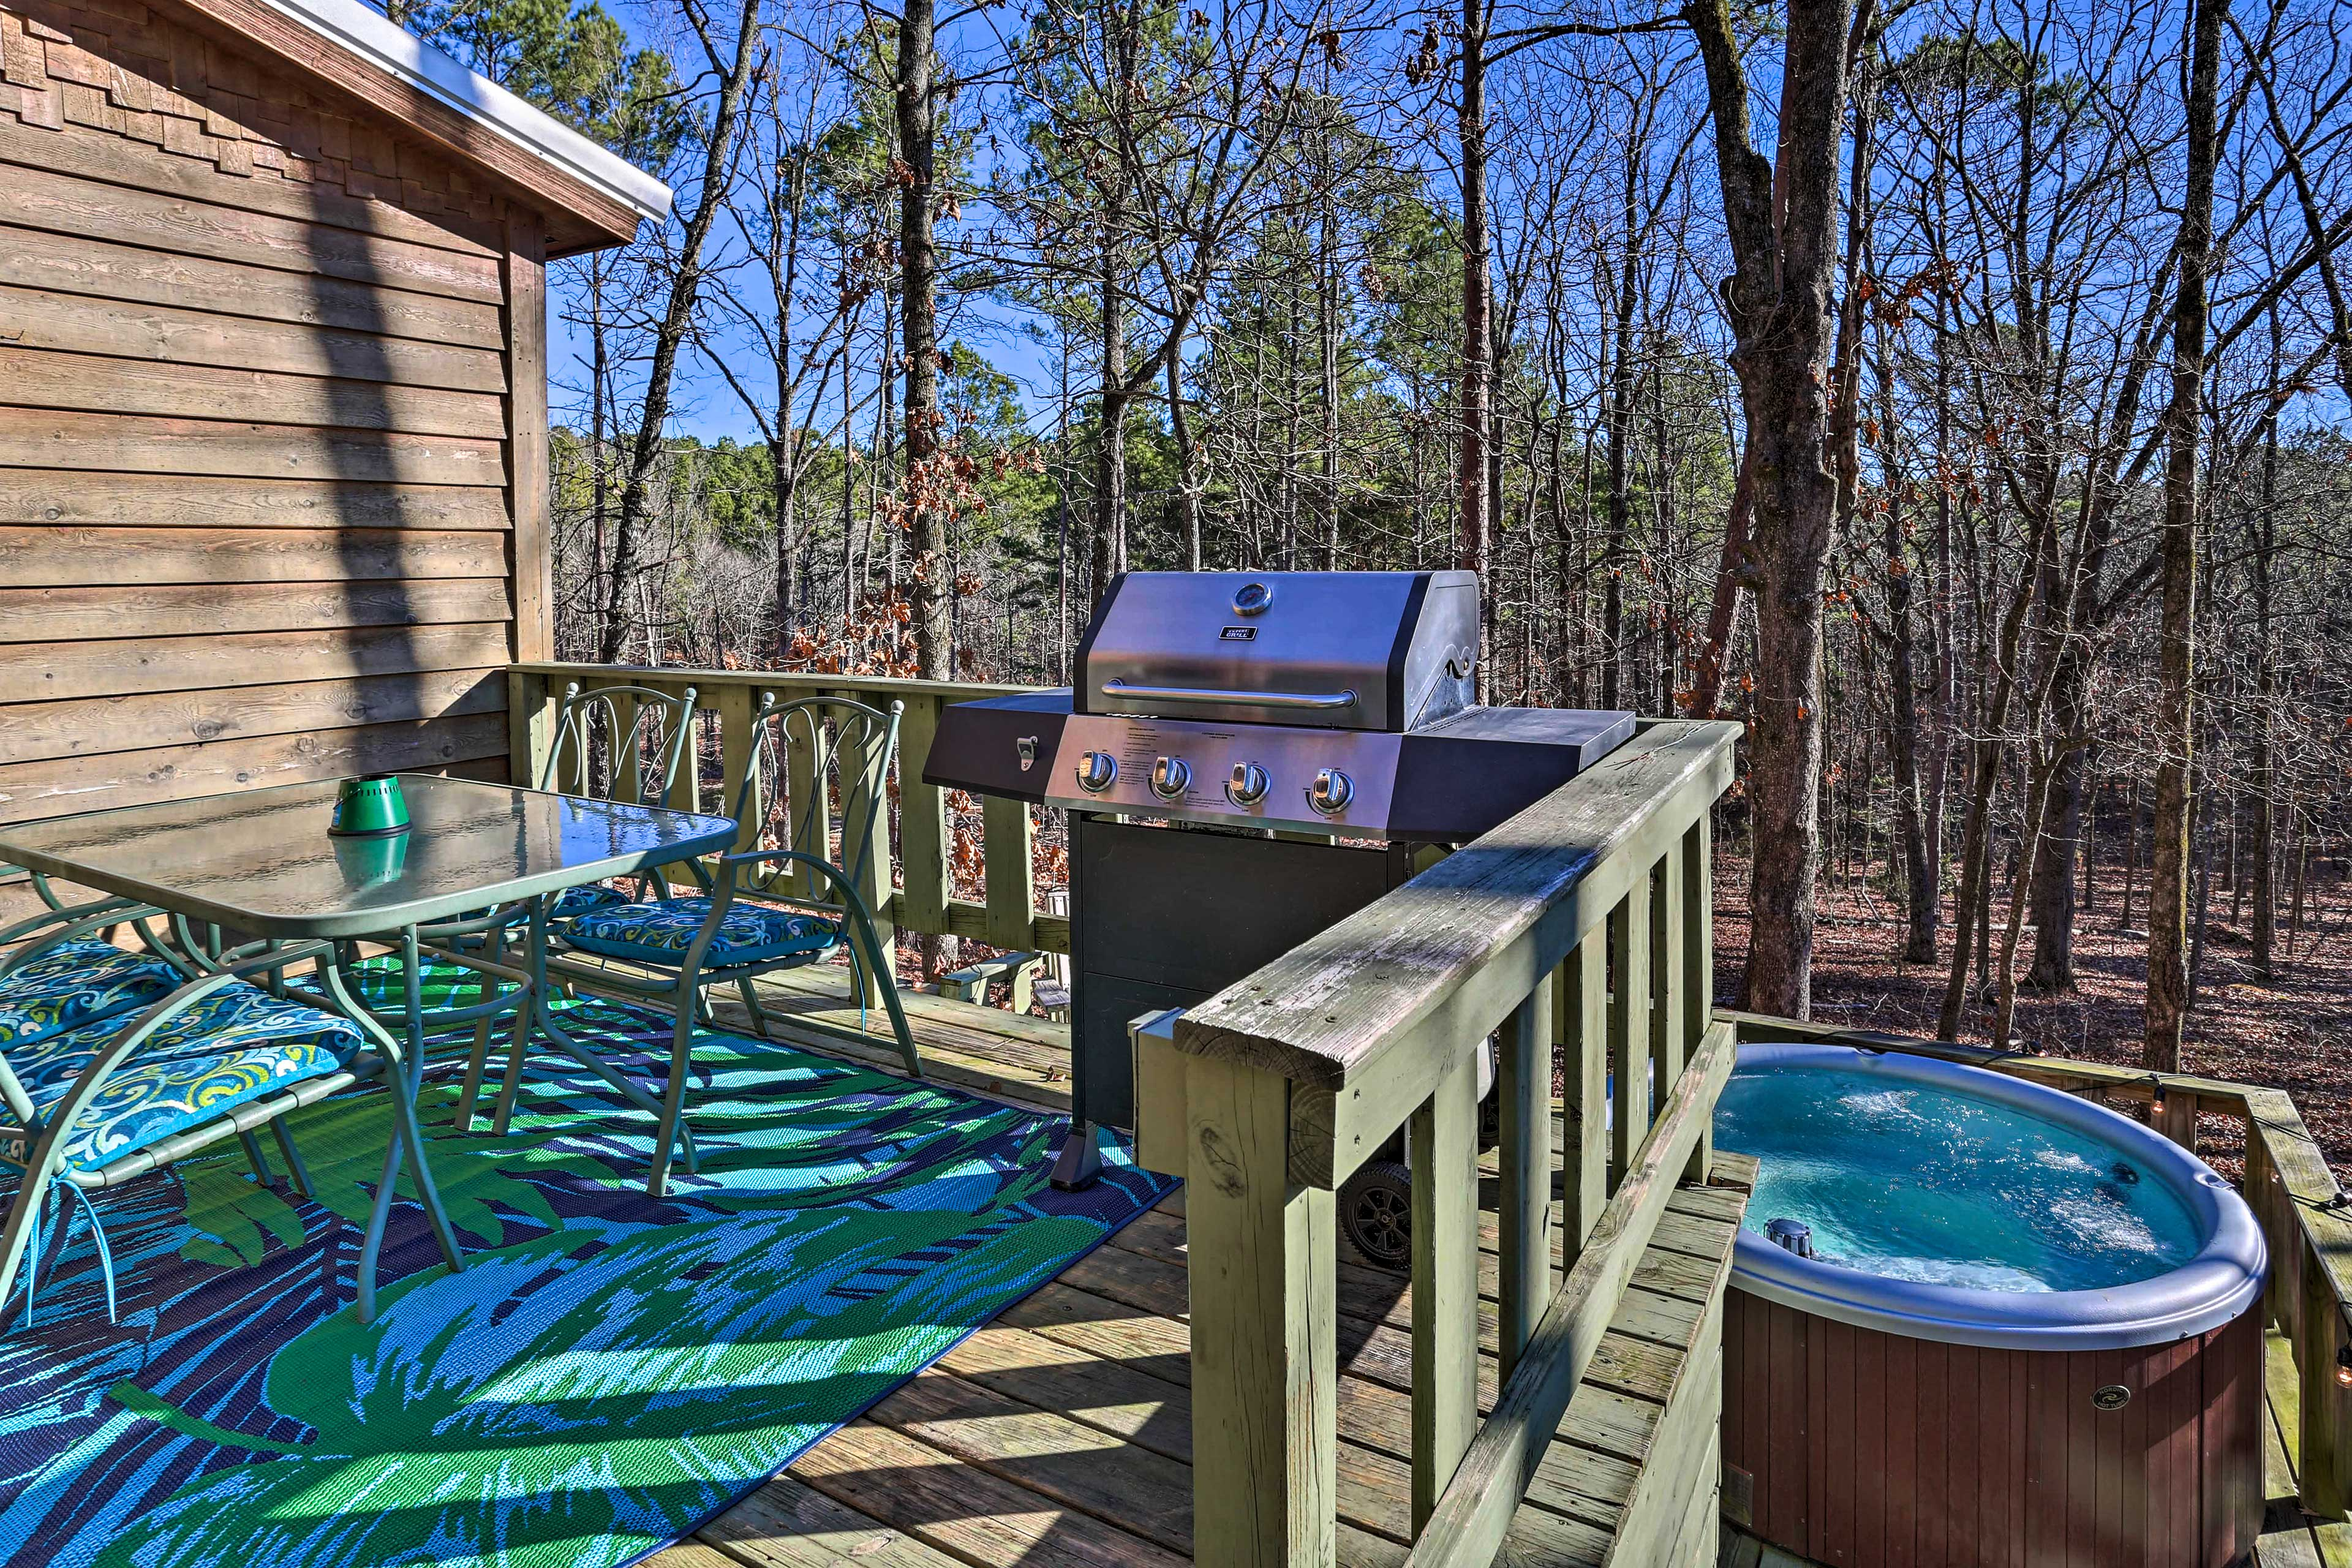 This cozy cabin offers desirable amenities like a hot tub & grill.